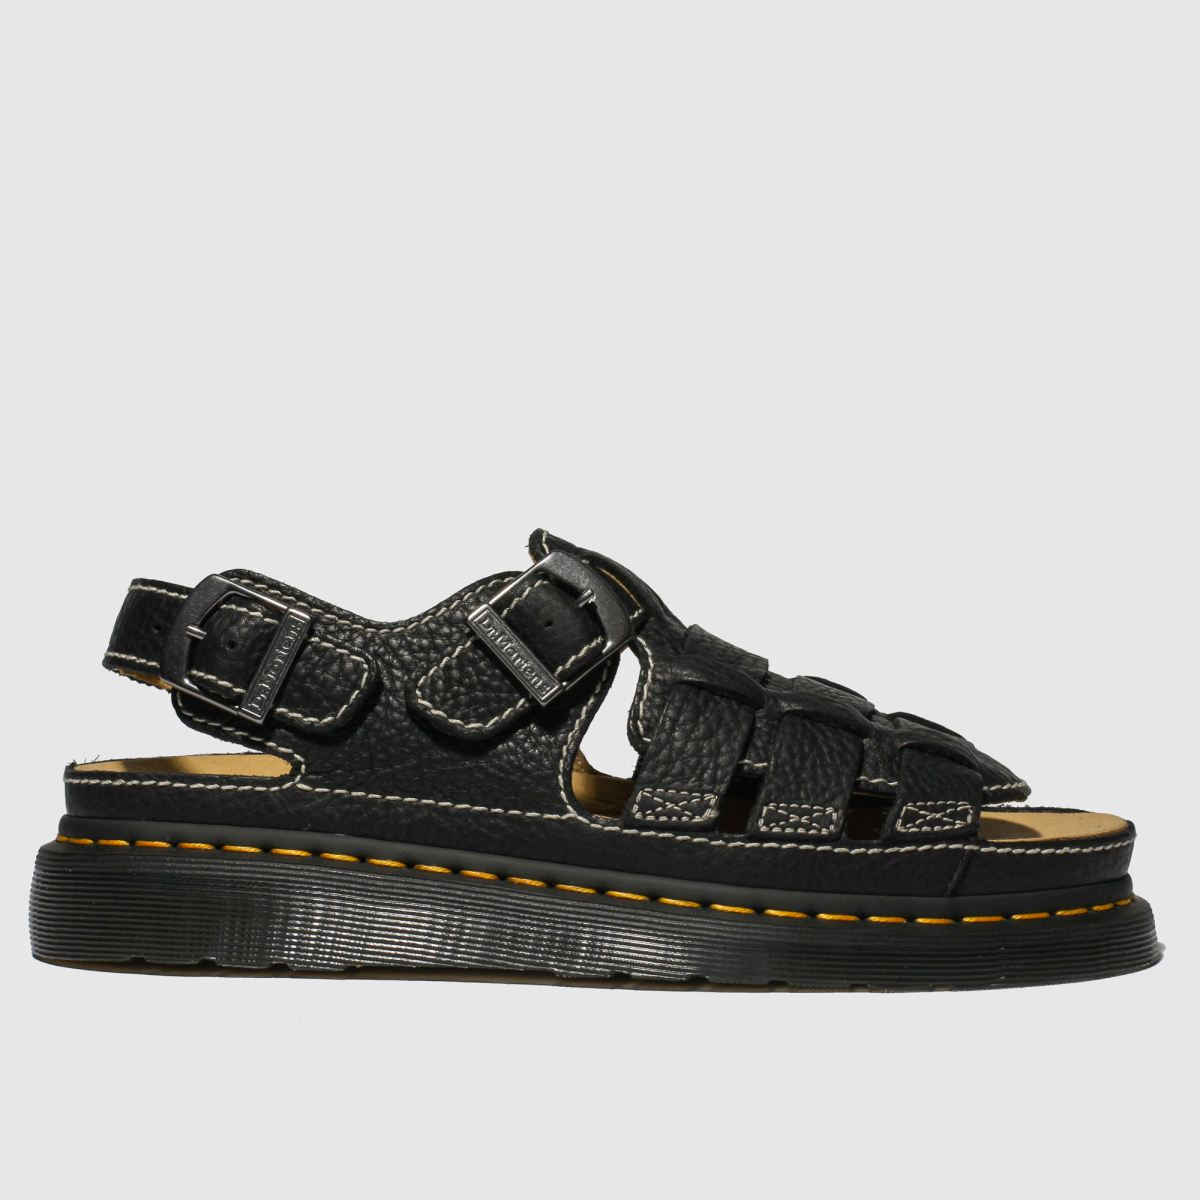 Dr Martens Black 8092 Arc Sandals